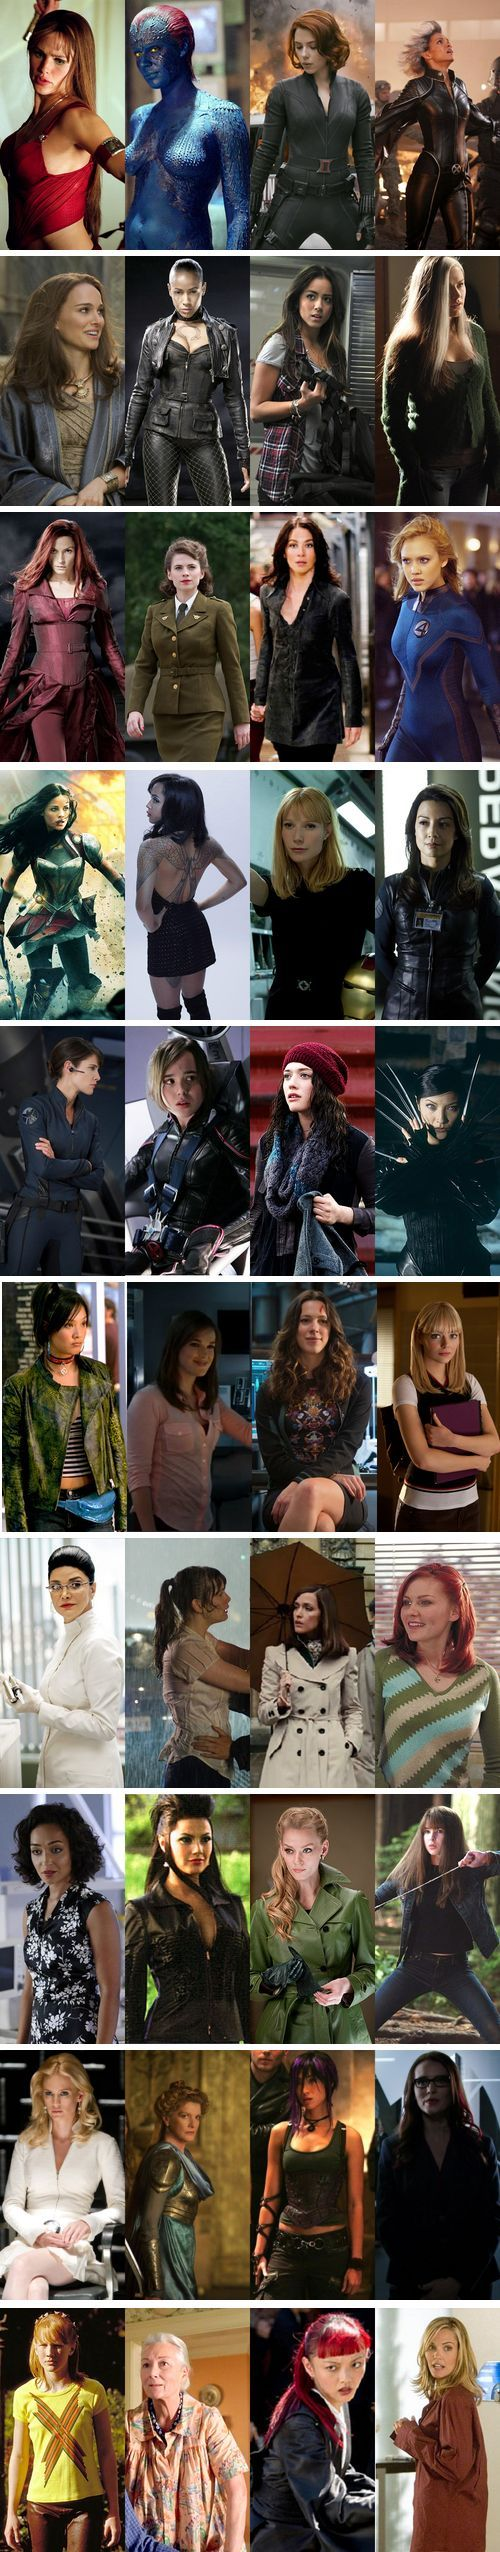 Marvel Women- Elektra, Raven, Natasha, Ororo, Jane, Callisto, Skye, Rogue, Jean, Peggy, Kayla, Sue, Sif, Angel, Pepper, Melinda, Maria, Kitty, Darcy, Yuriko, Jubilee, Jemma, Maya, Gwen, Kavita, Betty, Moira, Mary Jane, Raina, Mary, Viper, Abby, Emma, Frigga, Elizabeth, Victoria, Theresa, May, Yukio Christine: